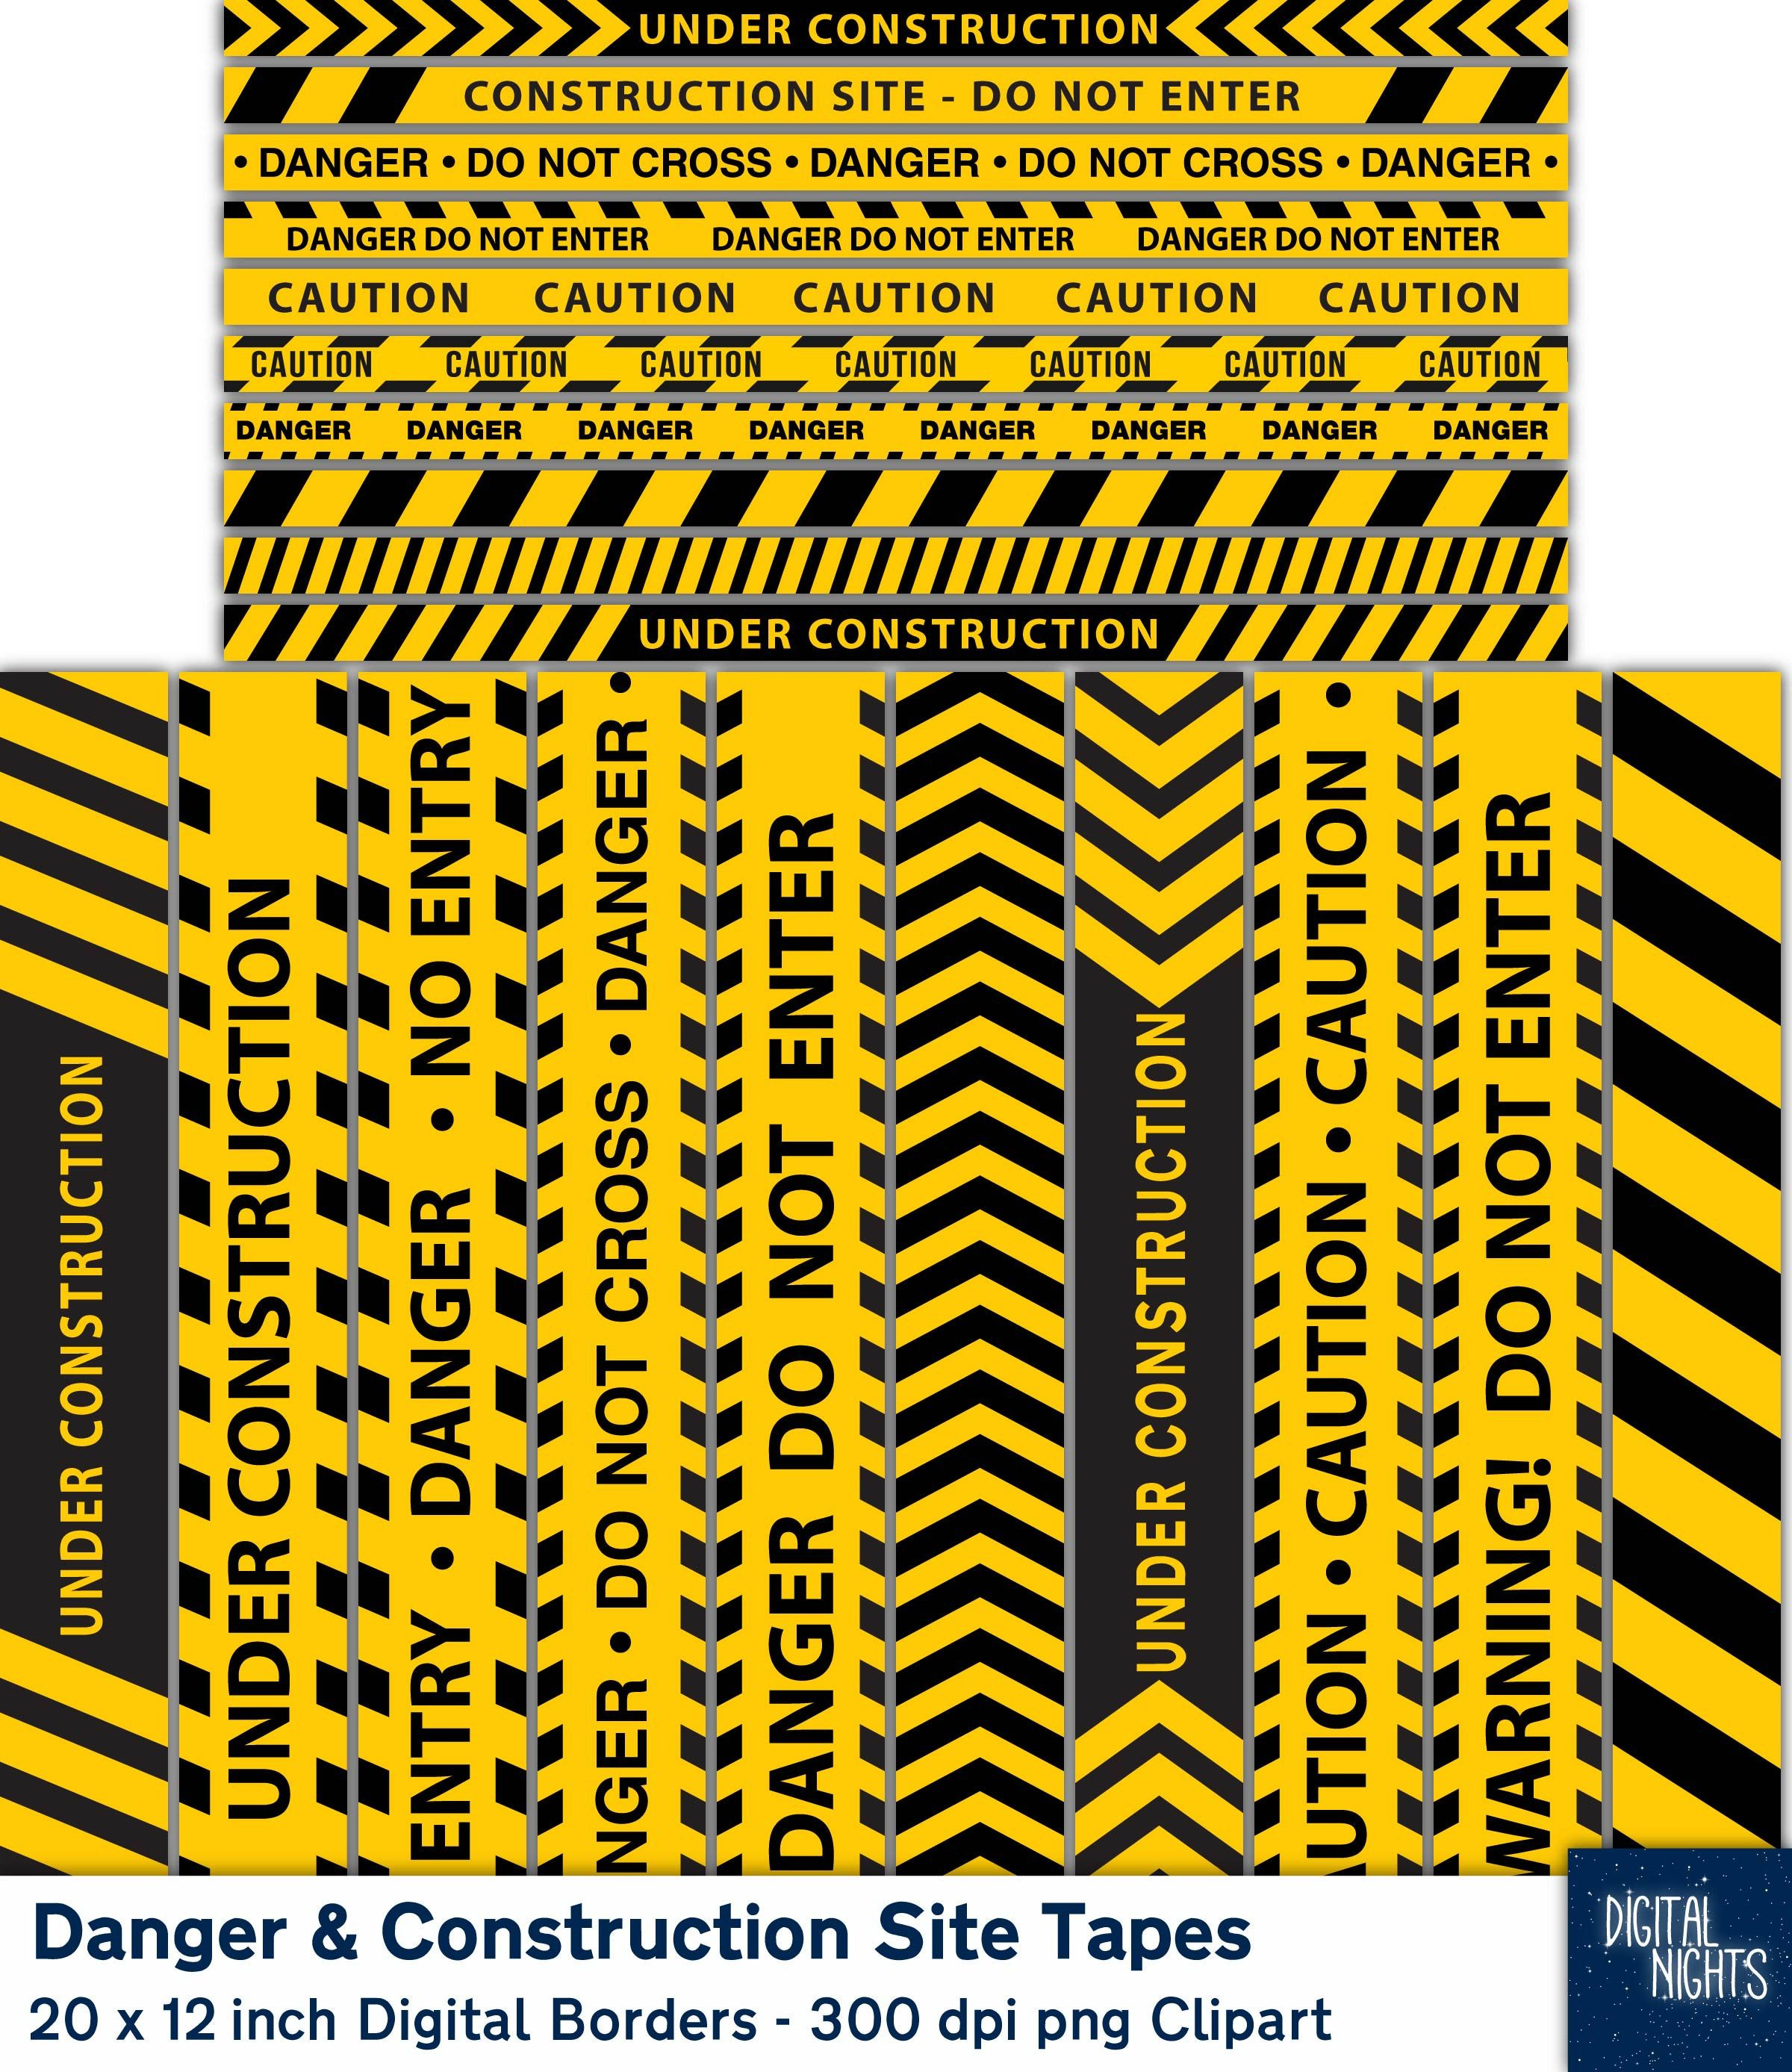 Construction And Danger Tapes Digital Borders 12 Clipart Borders Digital Collage Png Instant Download Digital Borders Digital Collage Clip Art Borders